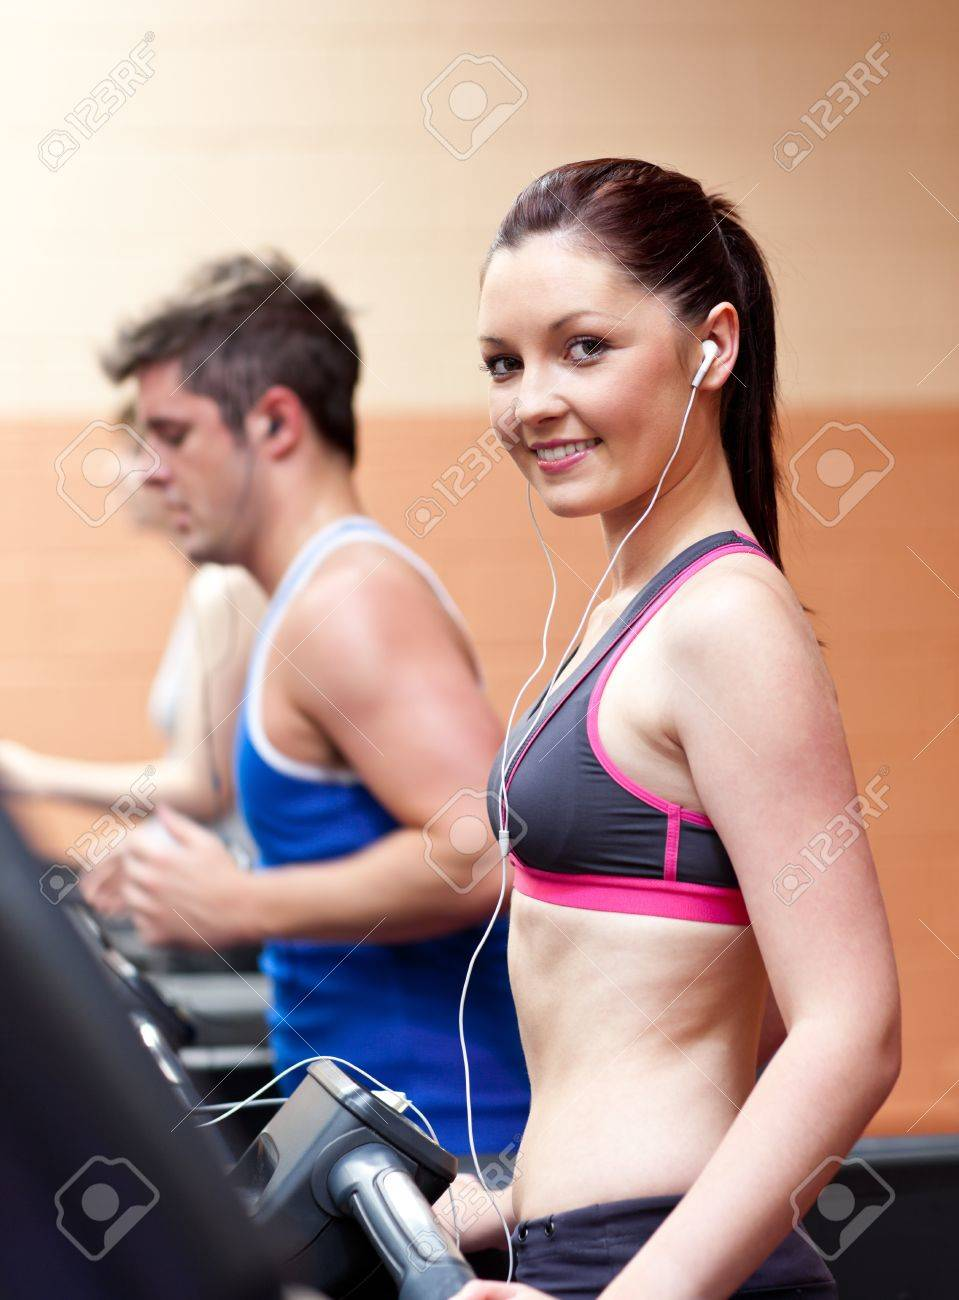 Cute athletic woman standing on a running machine with earphones Stock Photo - 10164129